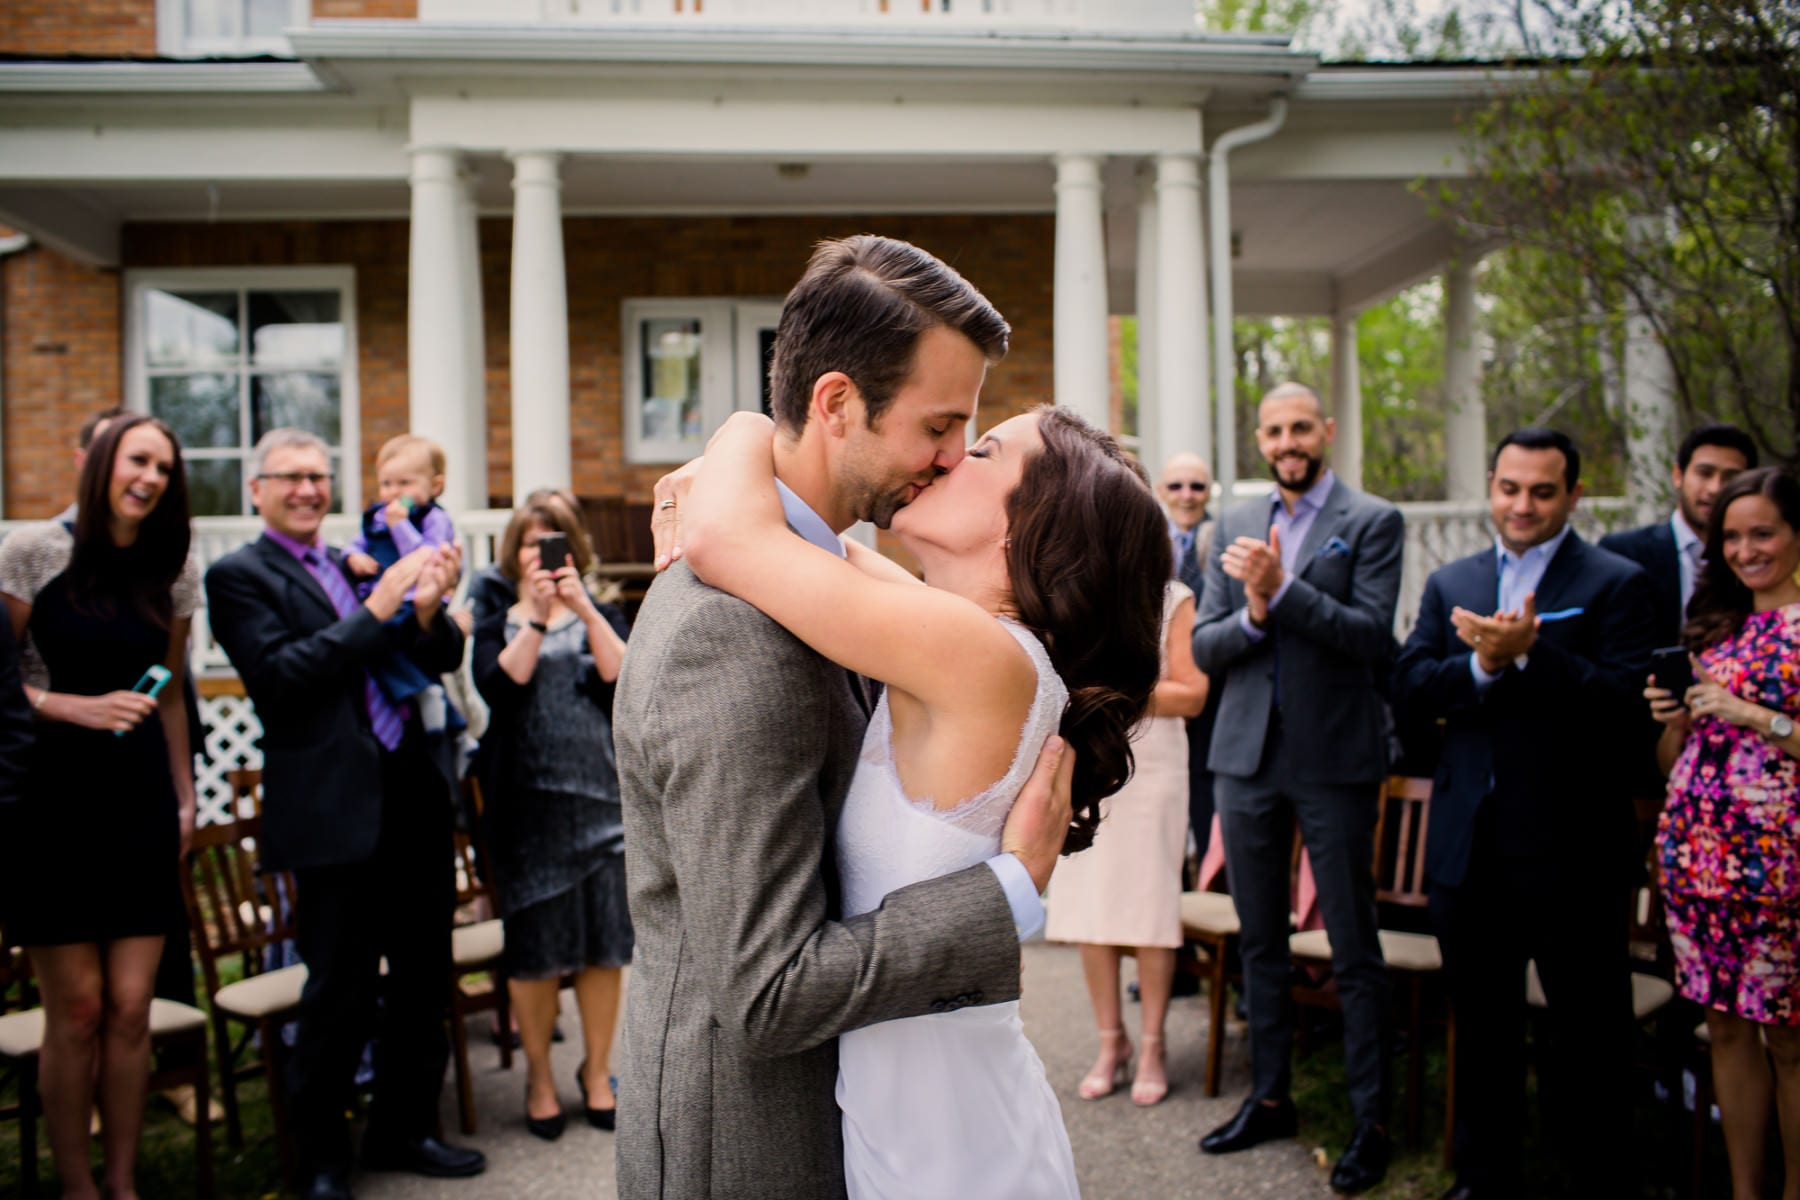 Mackenzie Miller Yoga wedding in Alberta, Canada (62)